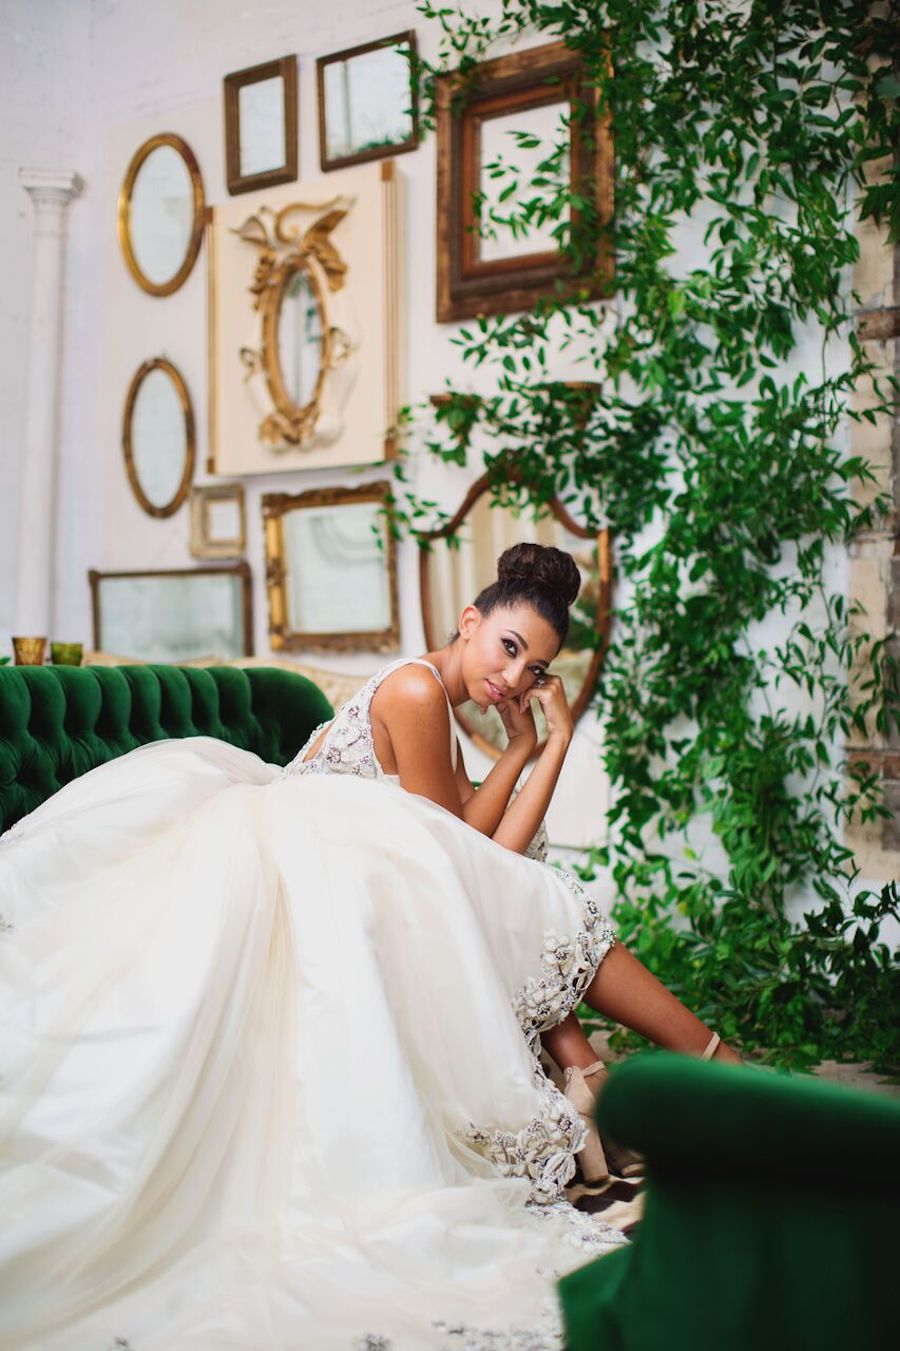 Greenery-Leather-Styled-Shoot-Sweet-Salvage-Rentals-Greg-Cahill2.jpg